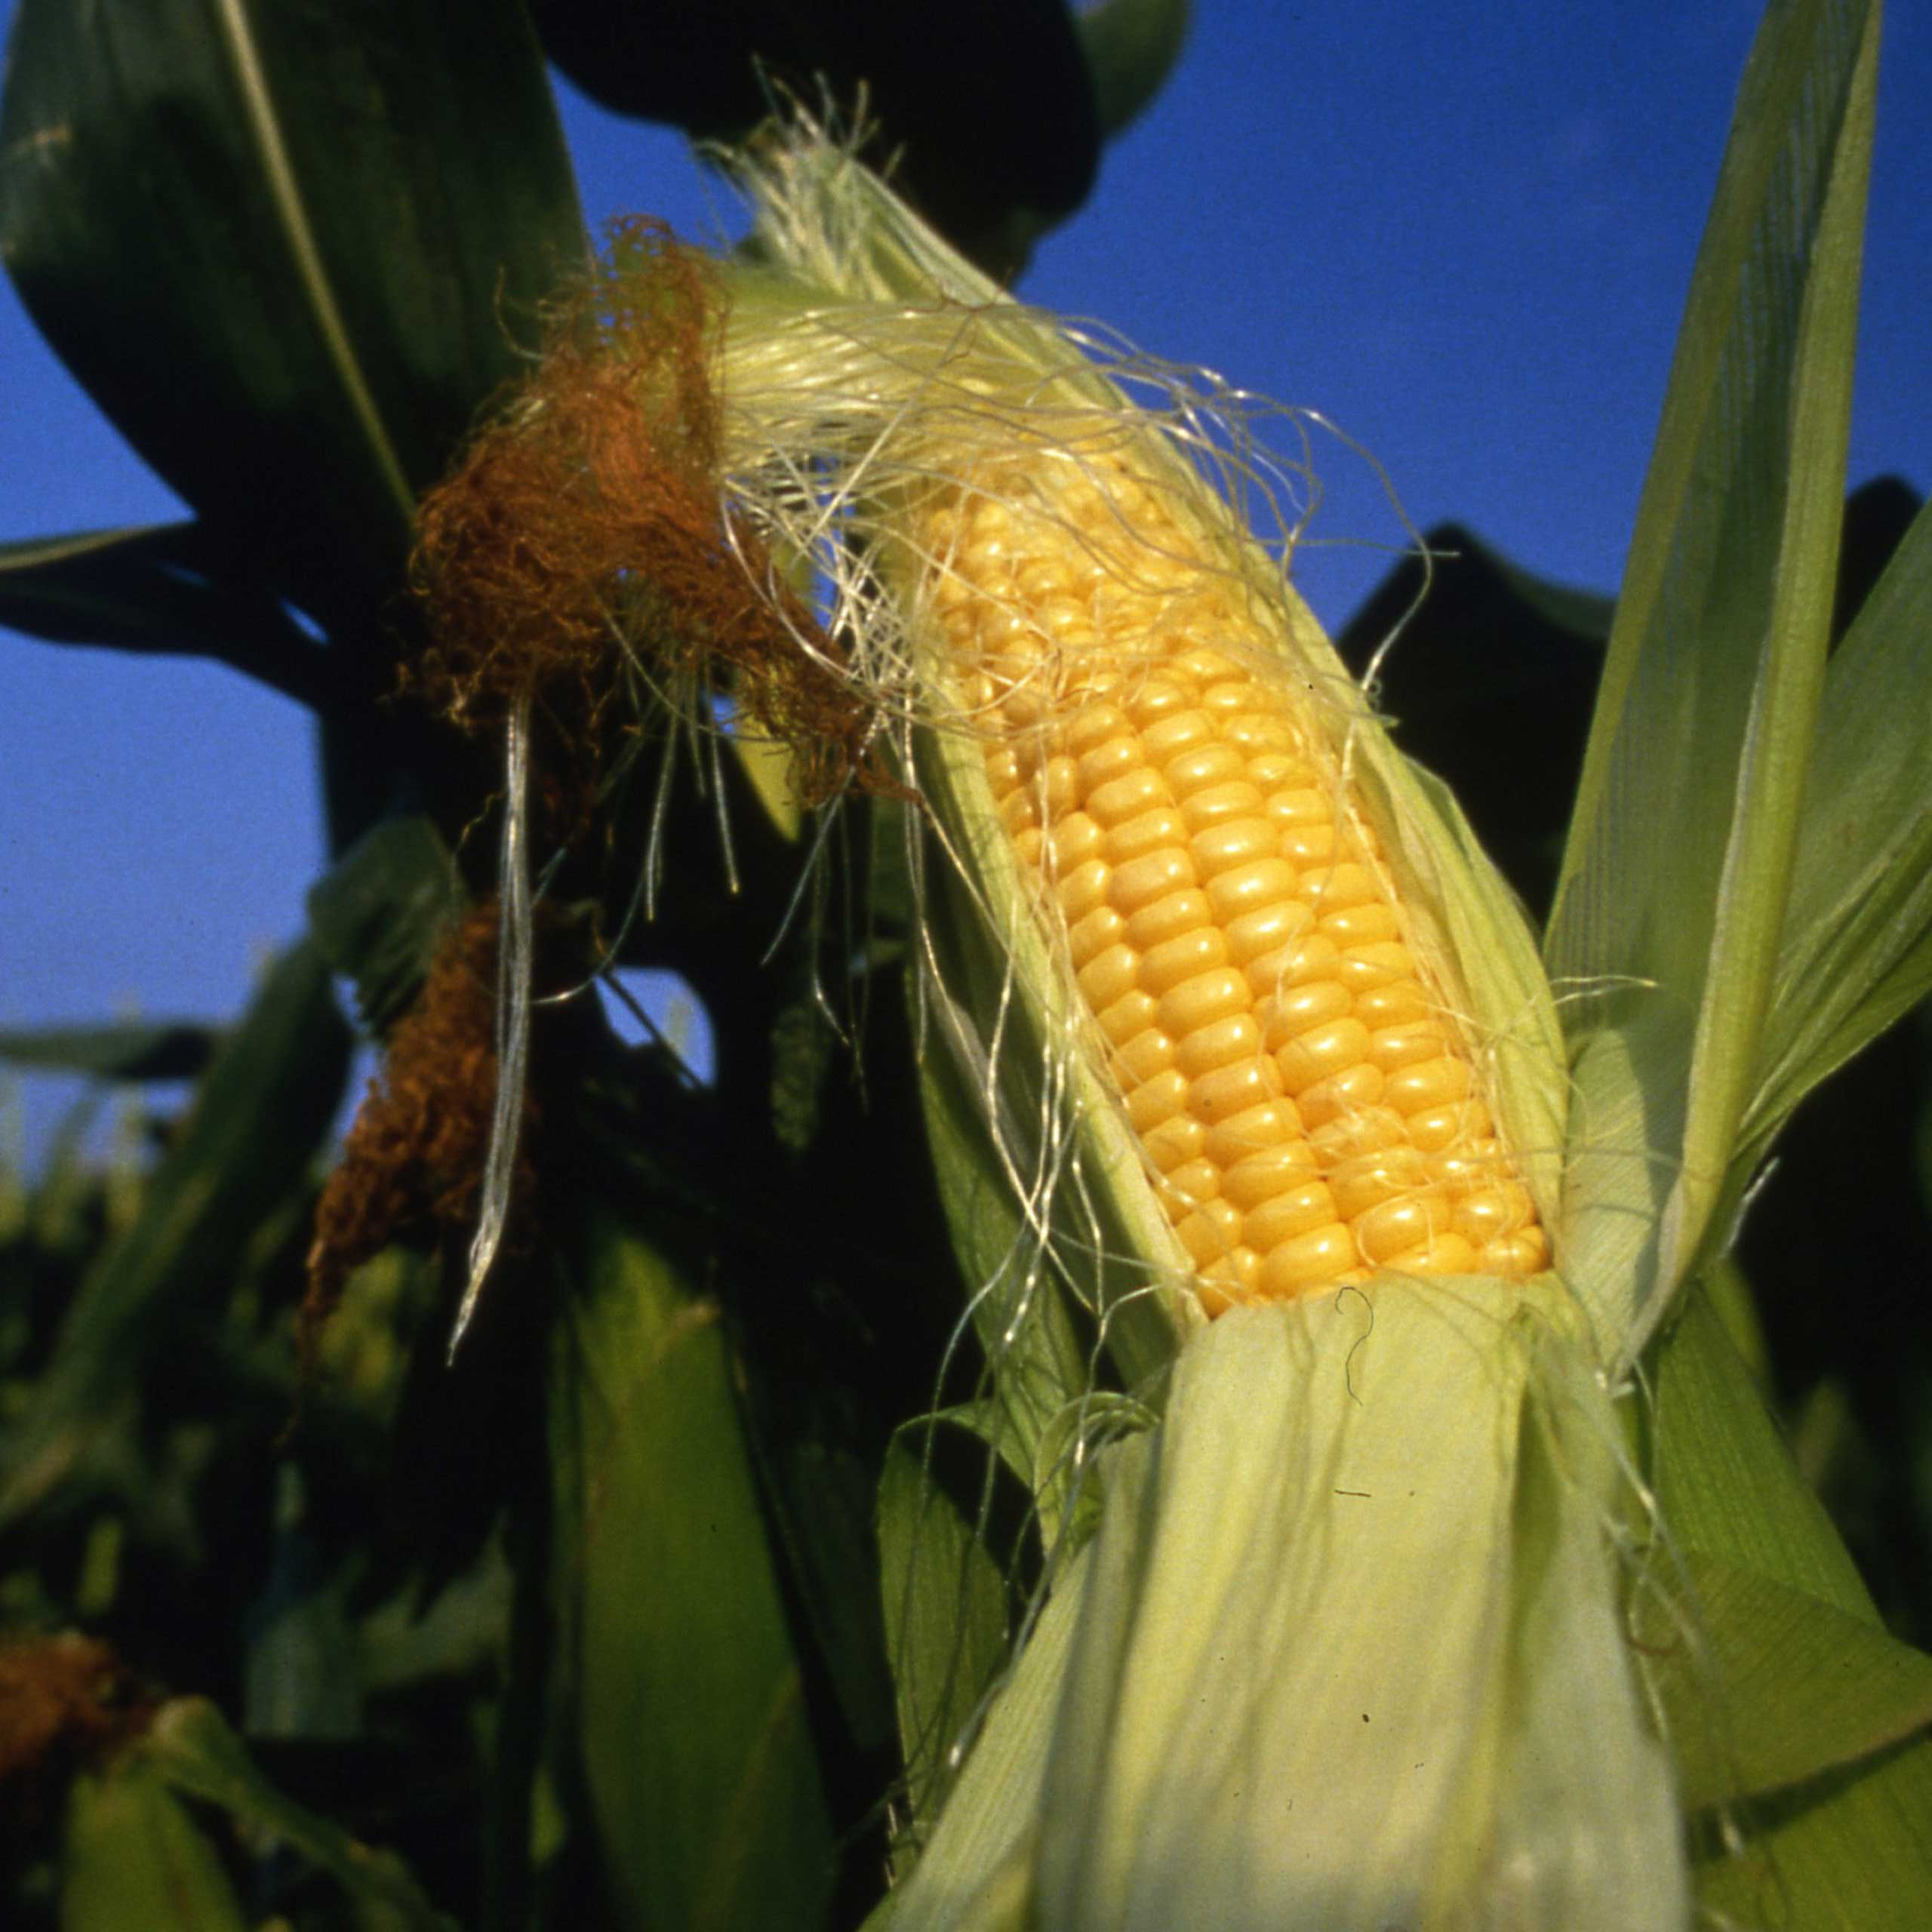 Sink your teeth into Arizona agriculture with a tasty trip to the 25th annual Verde Valley Corn Fest July 17th and 18th.